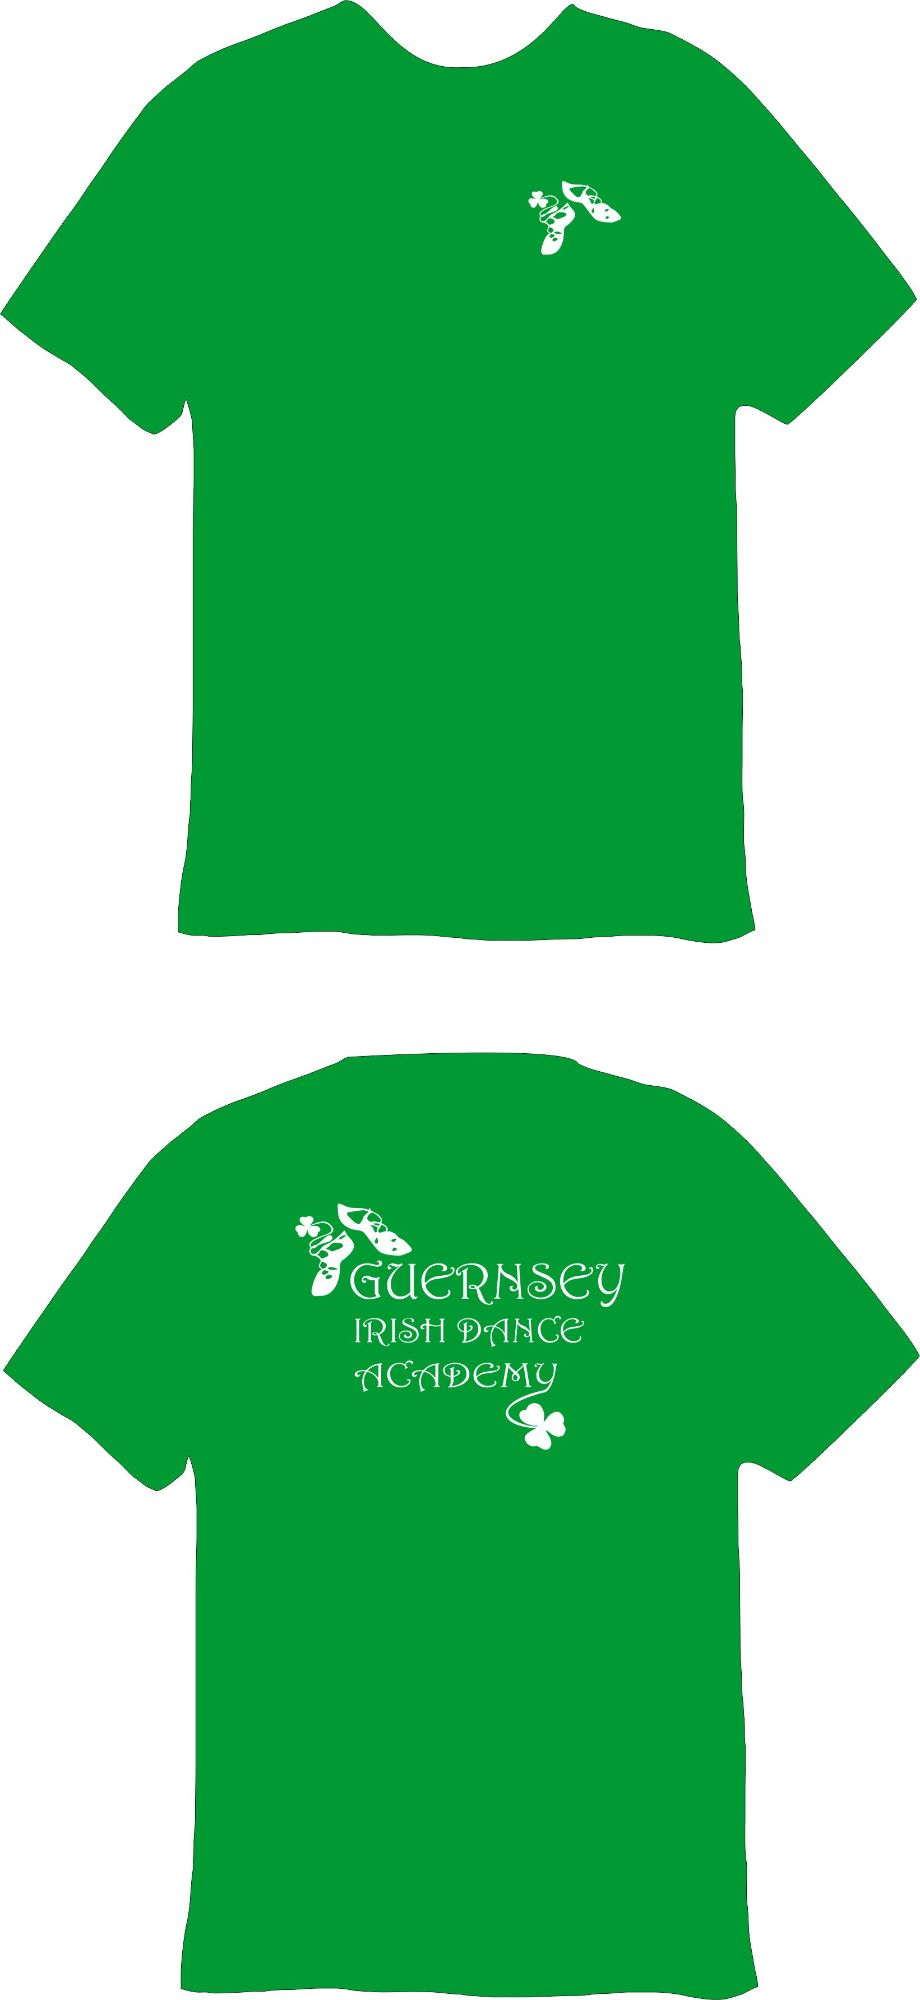 Guernsey Irish Dance Academy Technical T-Shirt